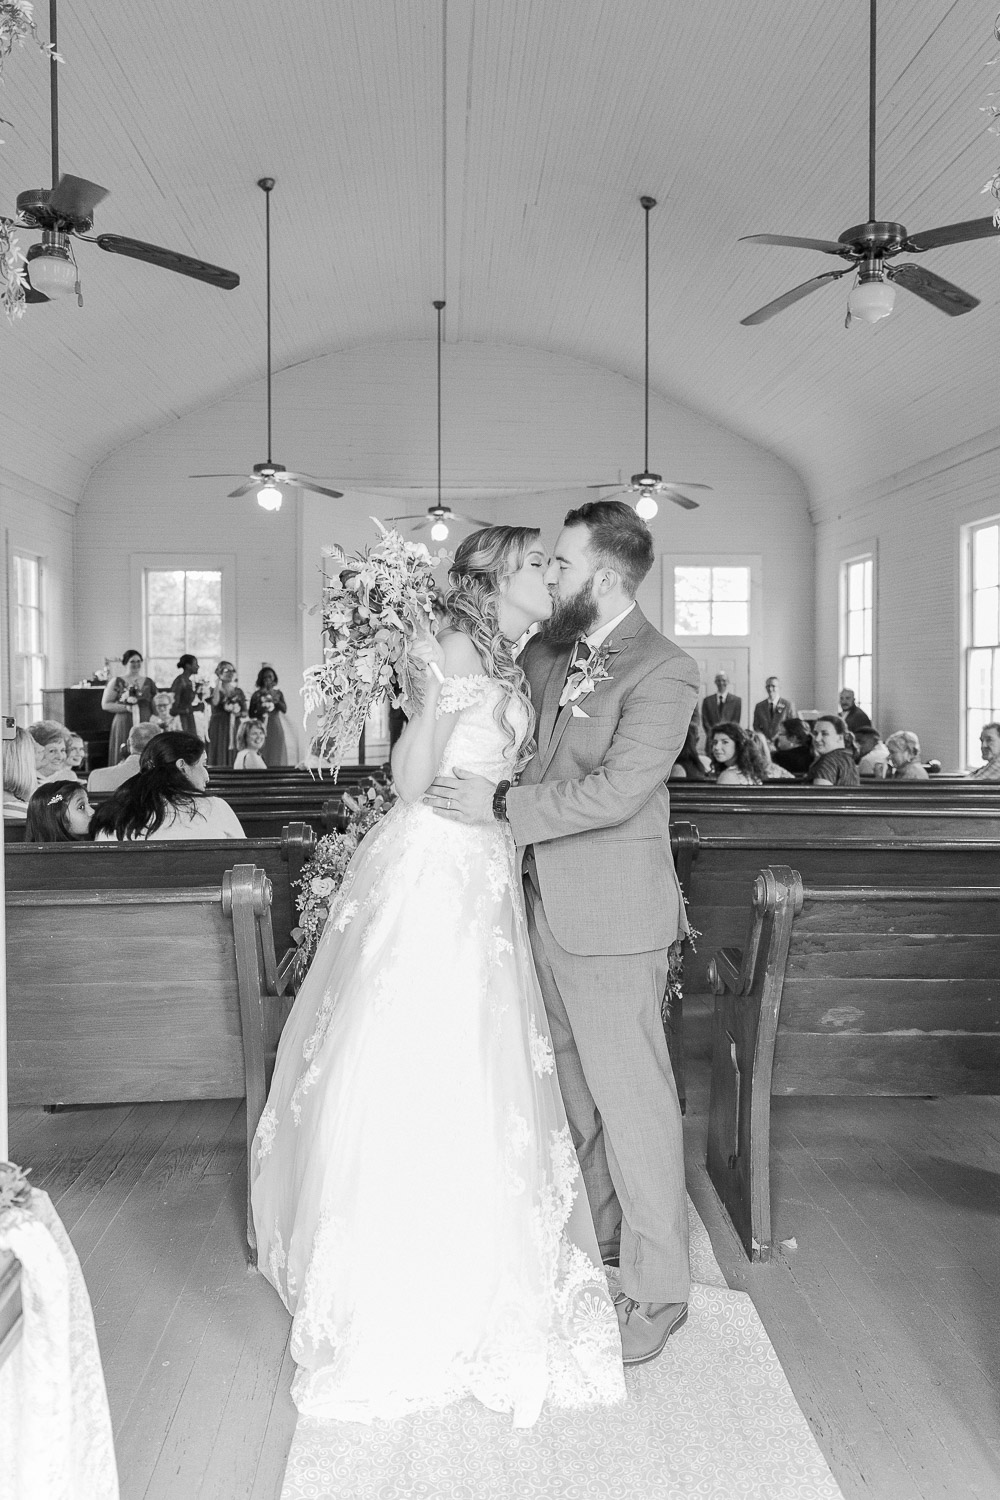 Mississippi Wedding Photographer | Bride and groom portrait | Just married | black and white | State Line, MS